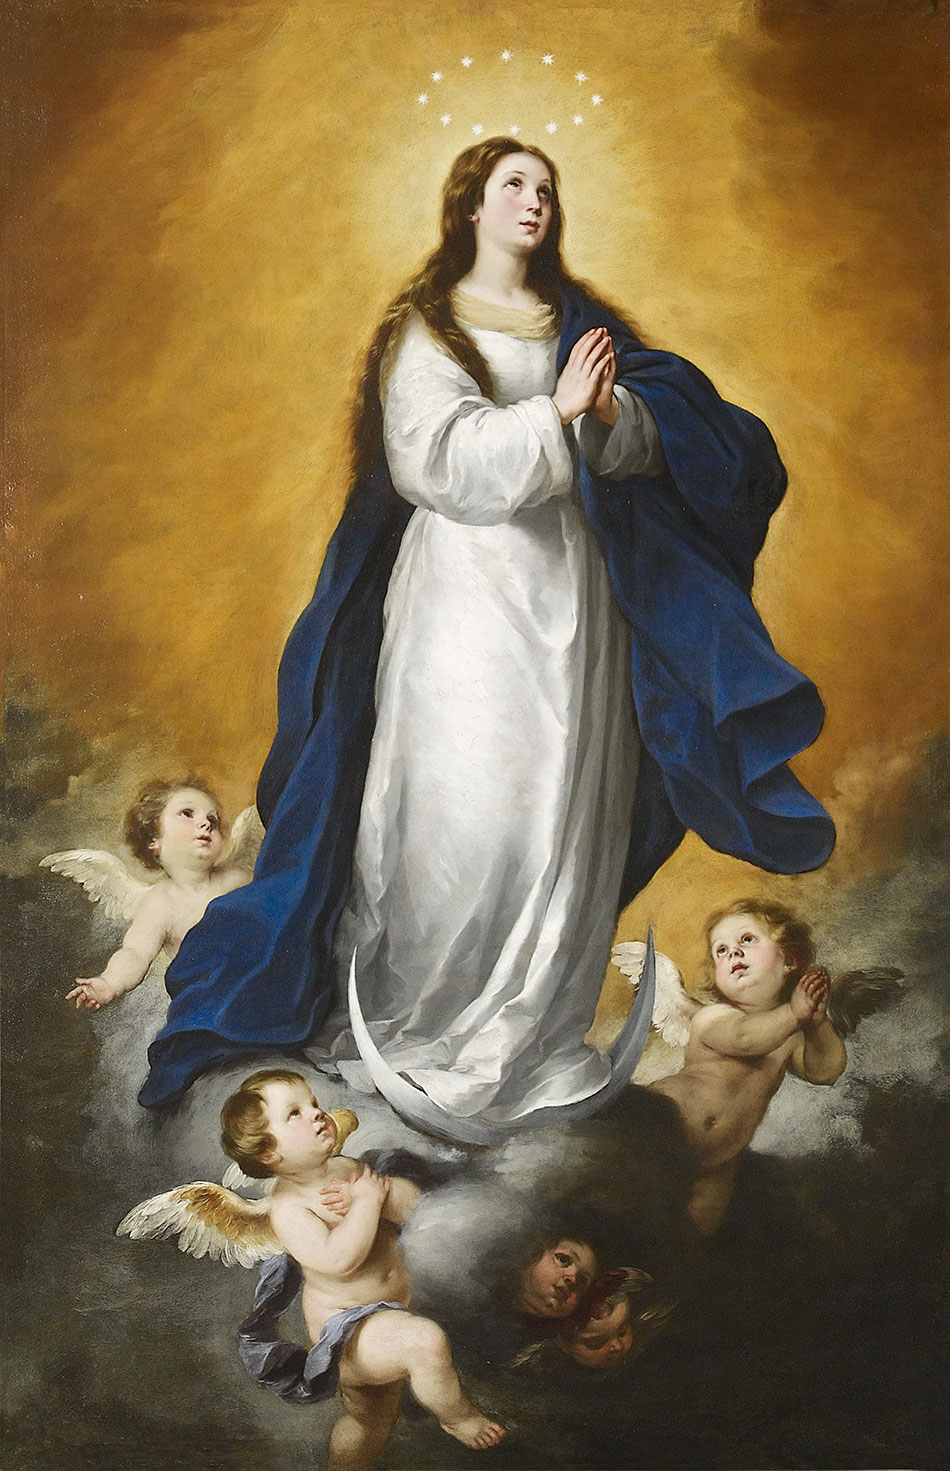 Bartolome-Esteban-Murillo_The-Immaculate-Conception_950